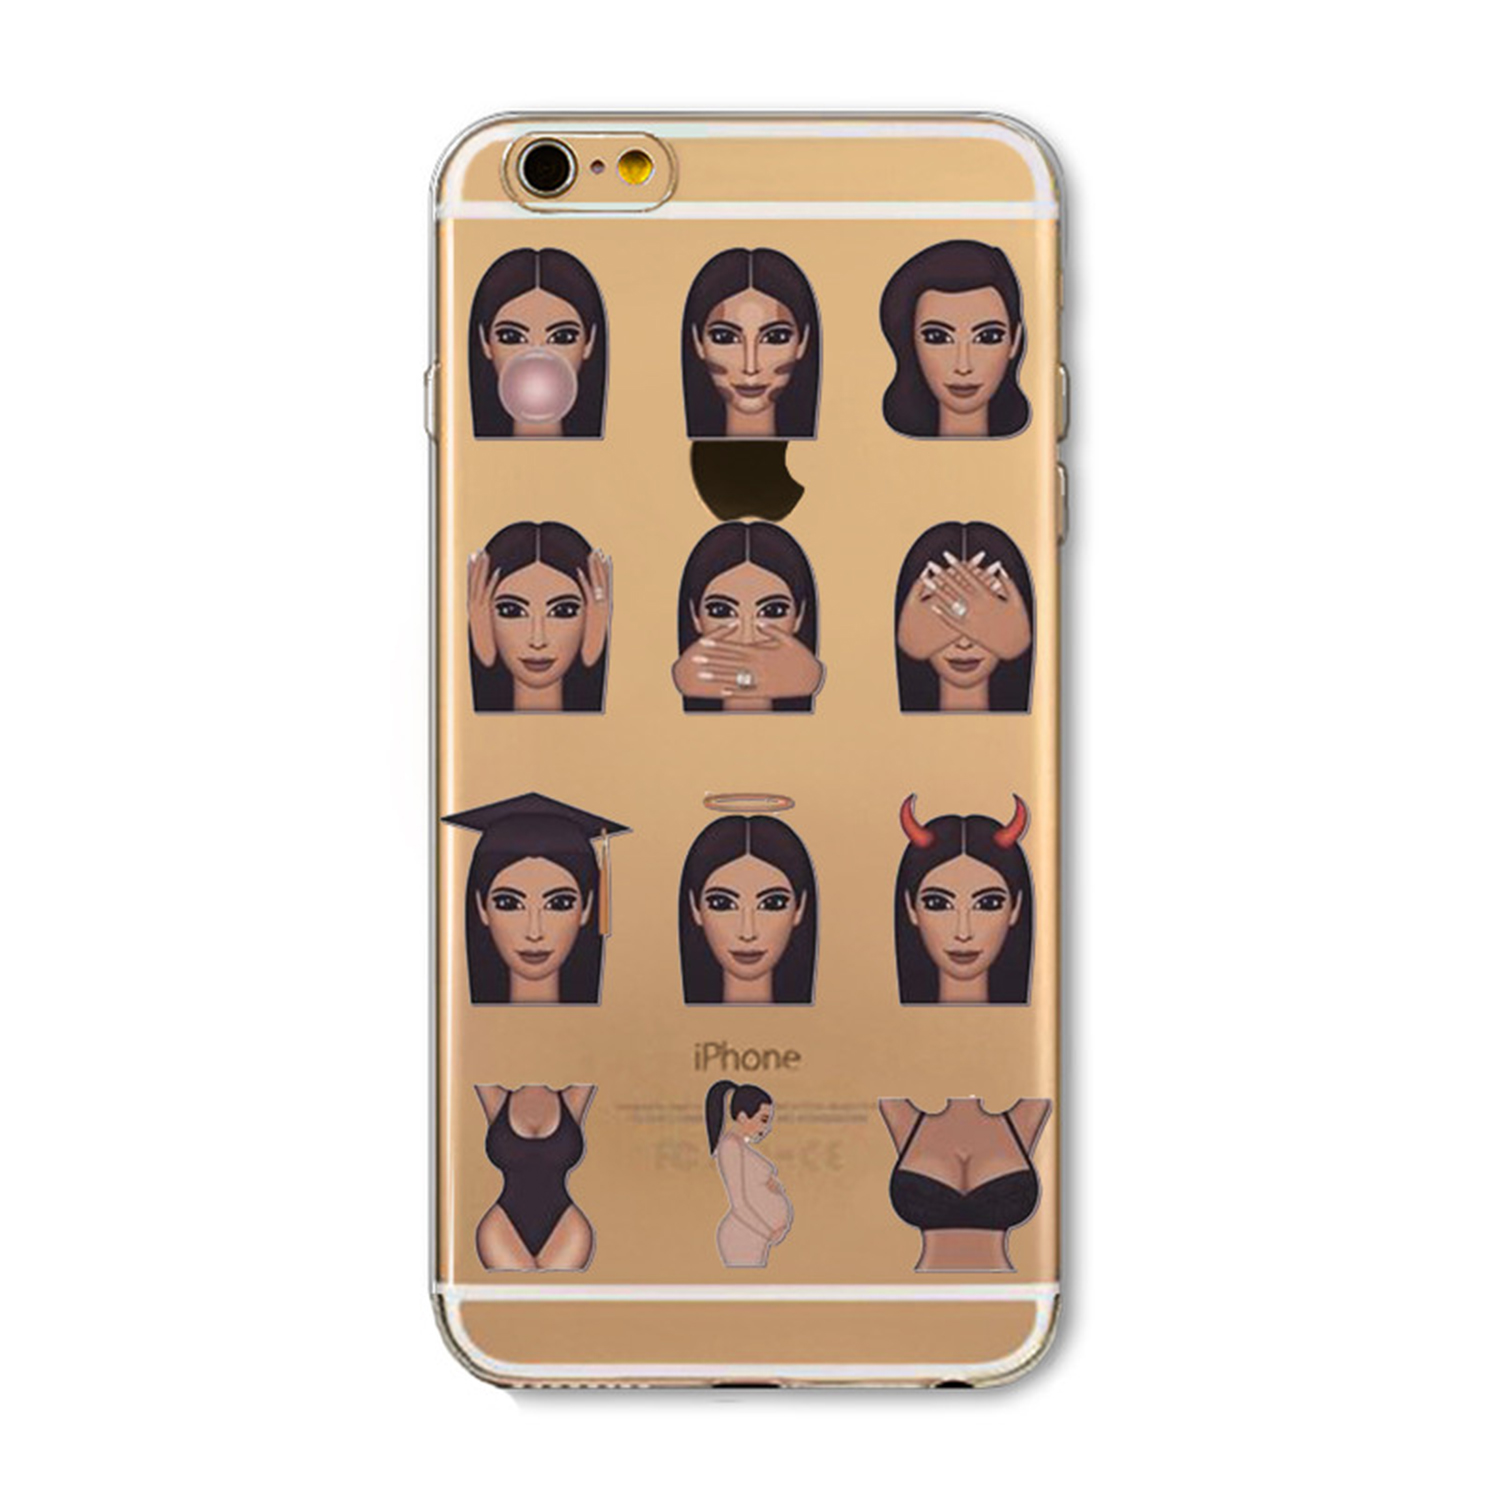 Kritzel Case Emoji Collection iPhone 6 / 6s - Kimoji 9